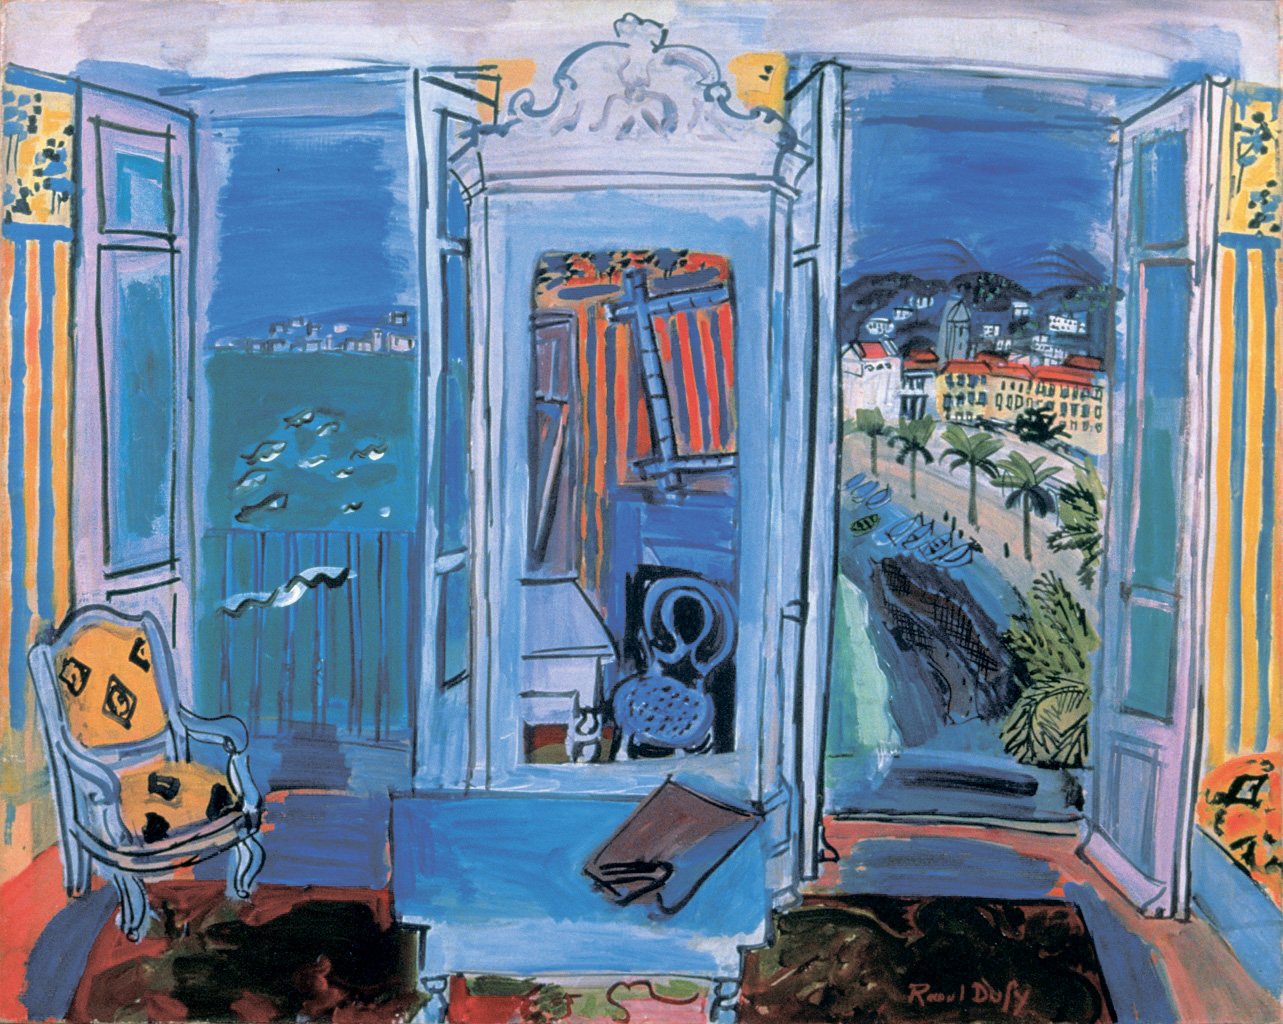 Raoul dufy 39 s true colors outshone many of his peers the for Fenetre ouverte